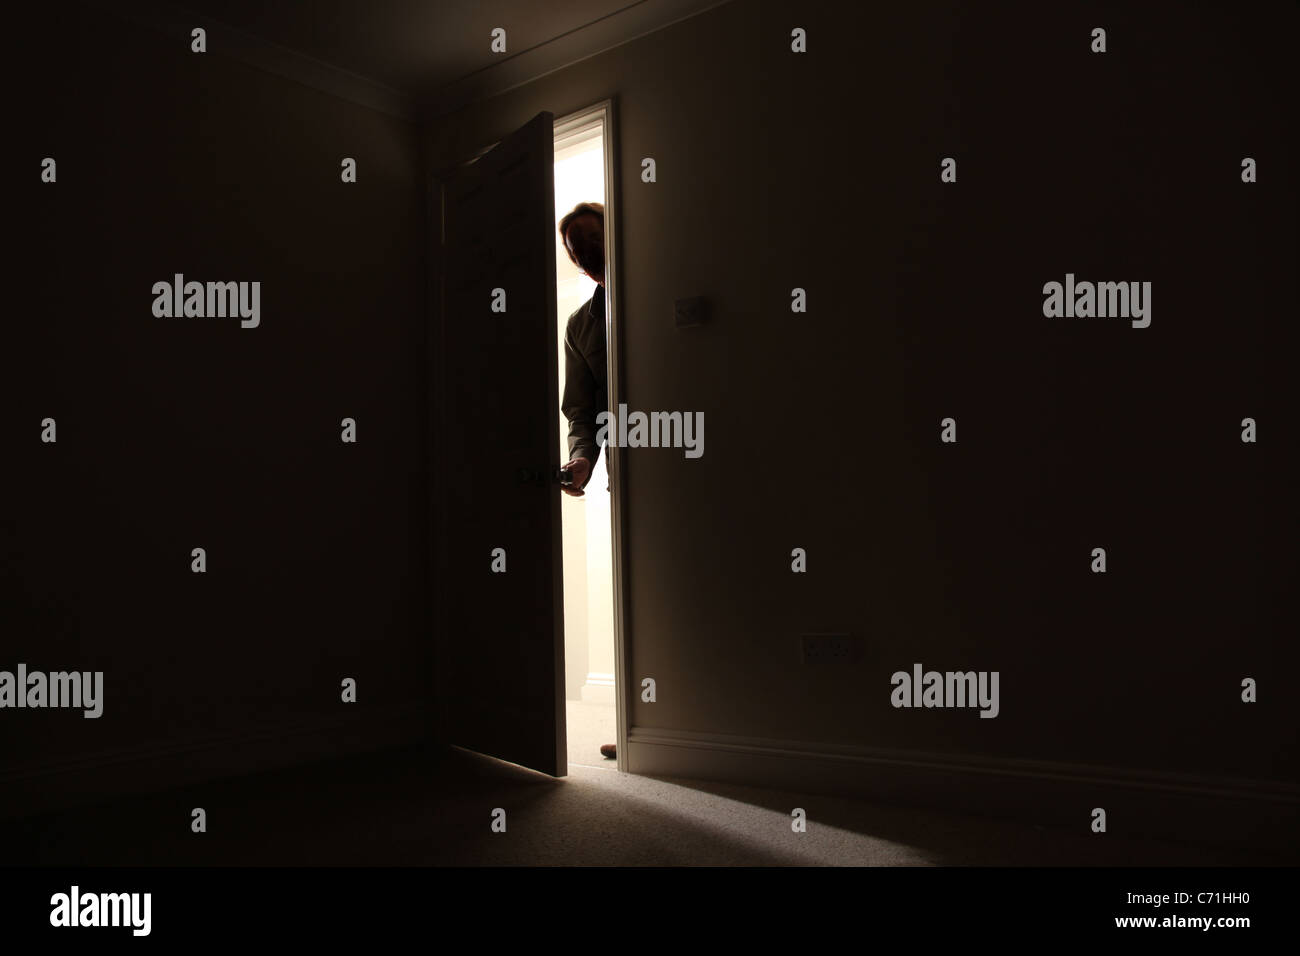 Silhouette of a male standing outside a dark room looking in. - Stock Image